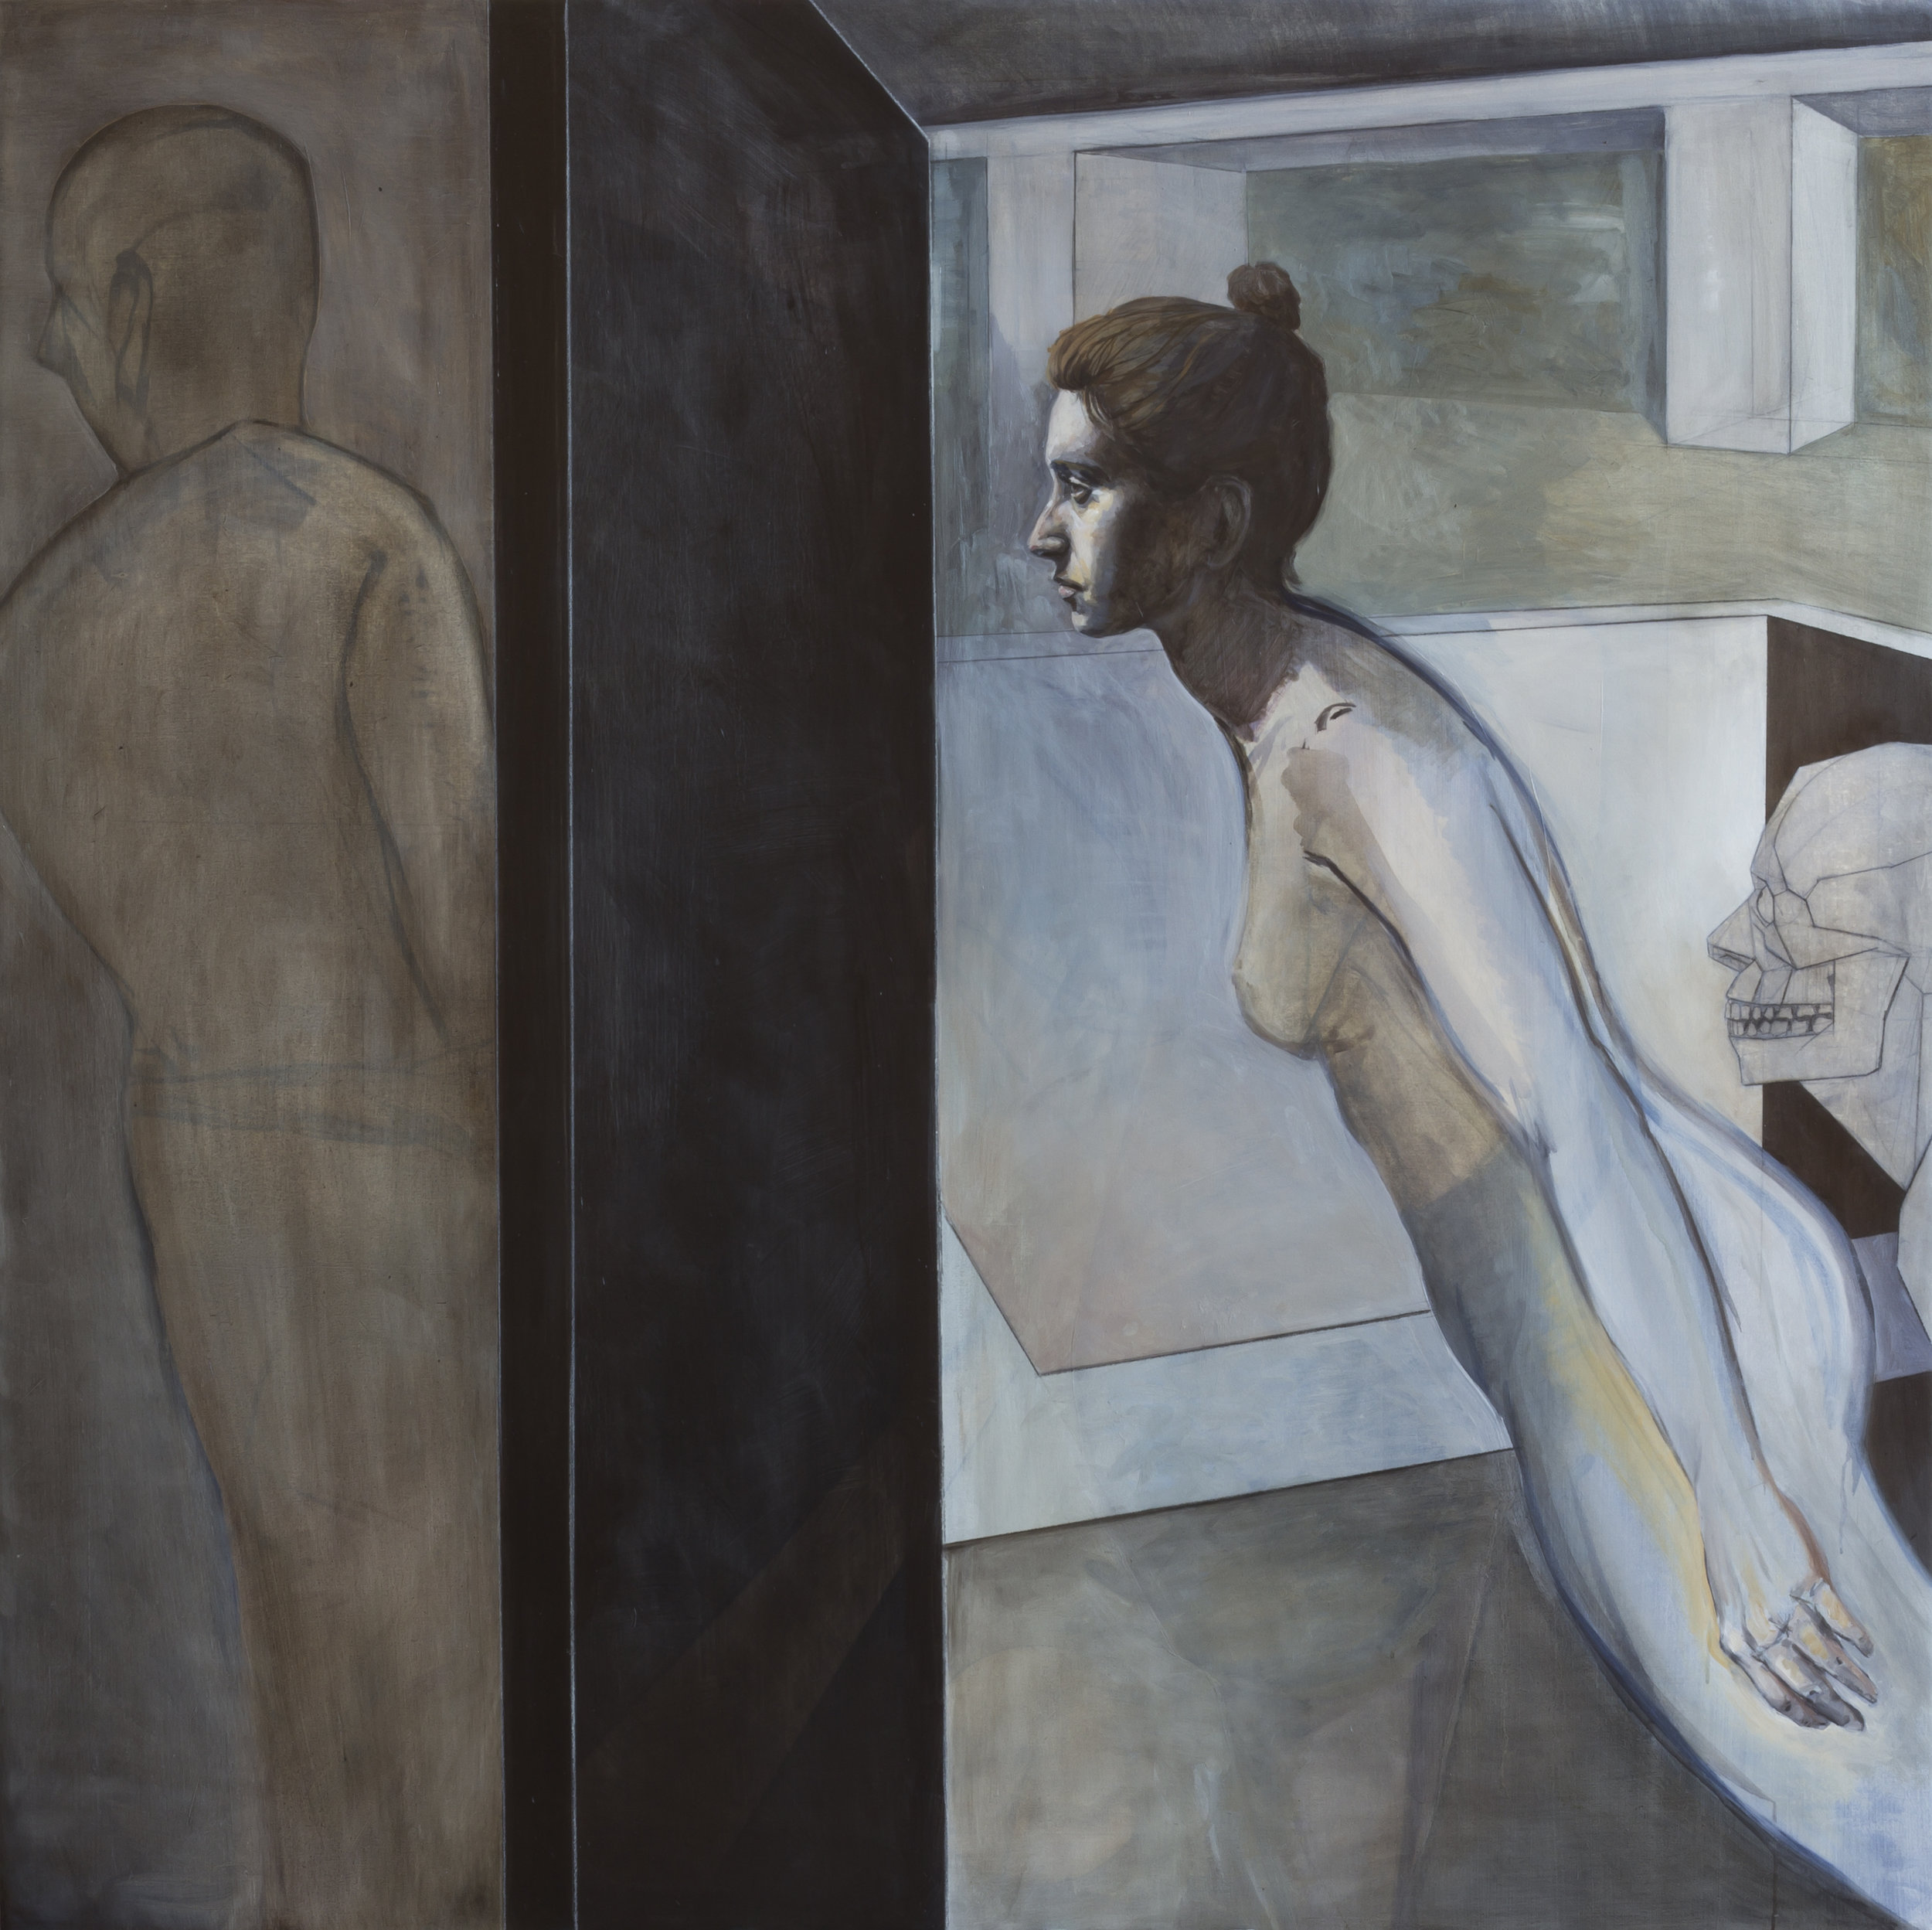 The Door II , 2018, oil and charcoal on canvas, 54 x 54in